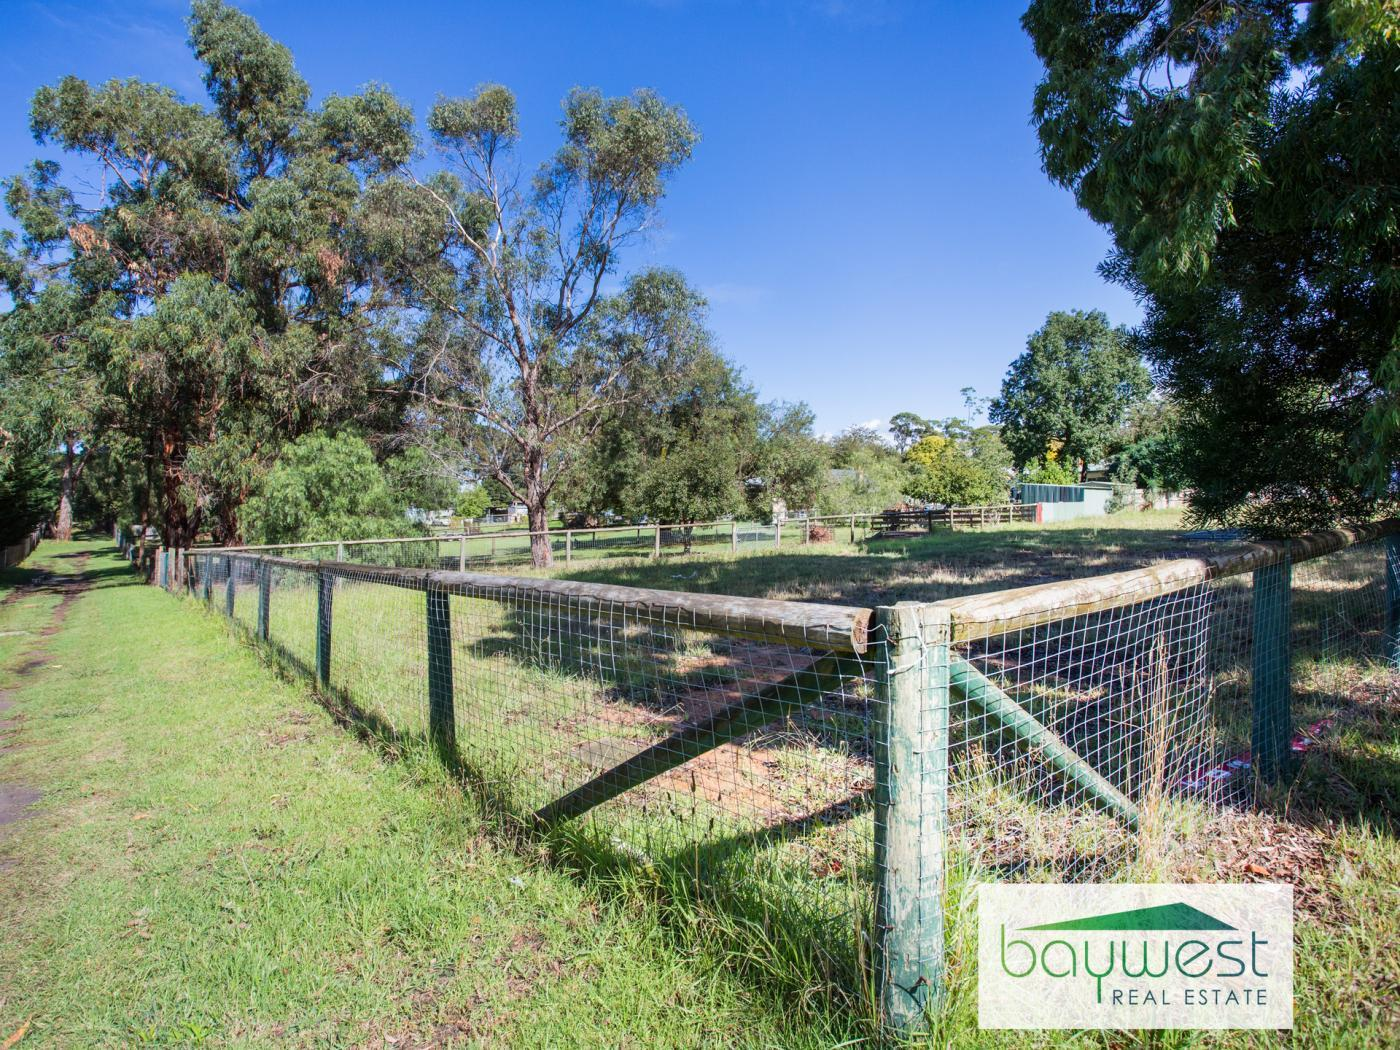 Homes for sale crib point vic - Crib Point Houses For Sale 13 Colin Parade Crib Point Vic 3919 Sale Rental History